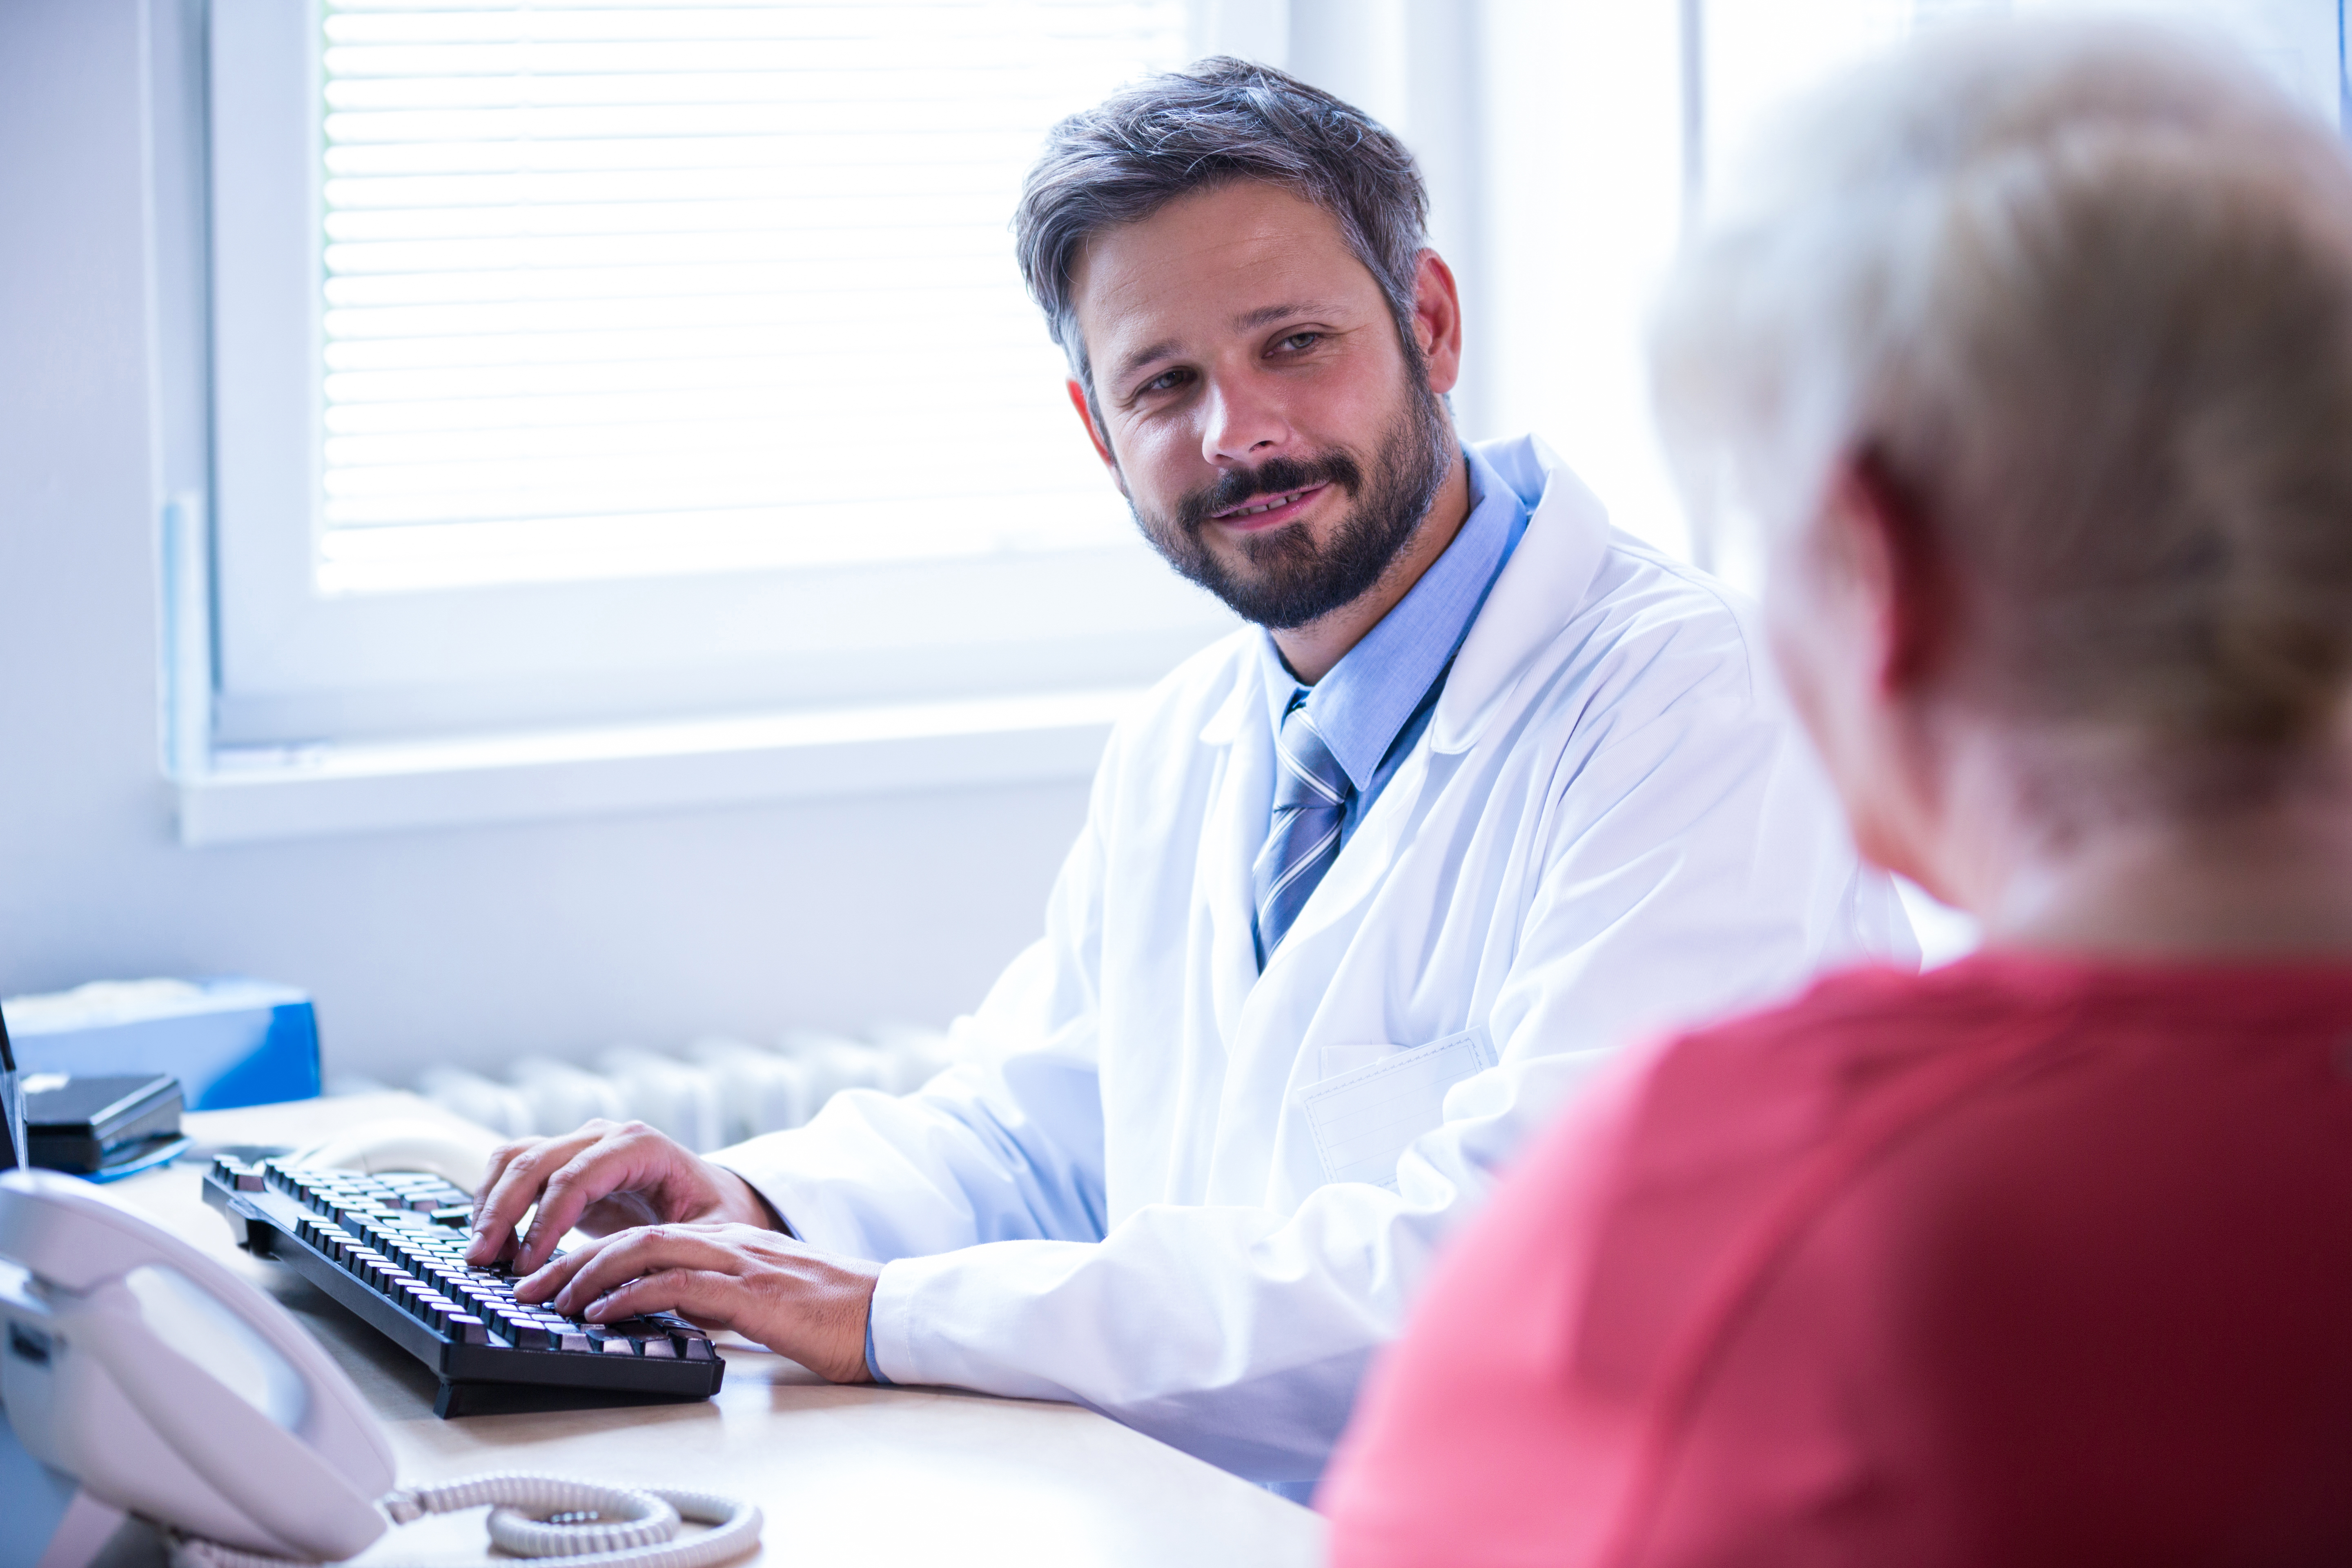 Doctor interacting with patient while working on computer in medical office at hospital